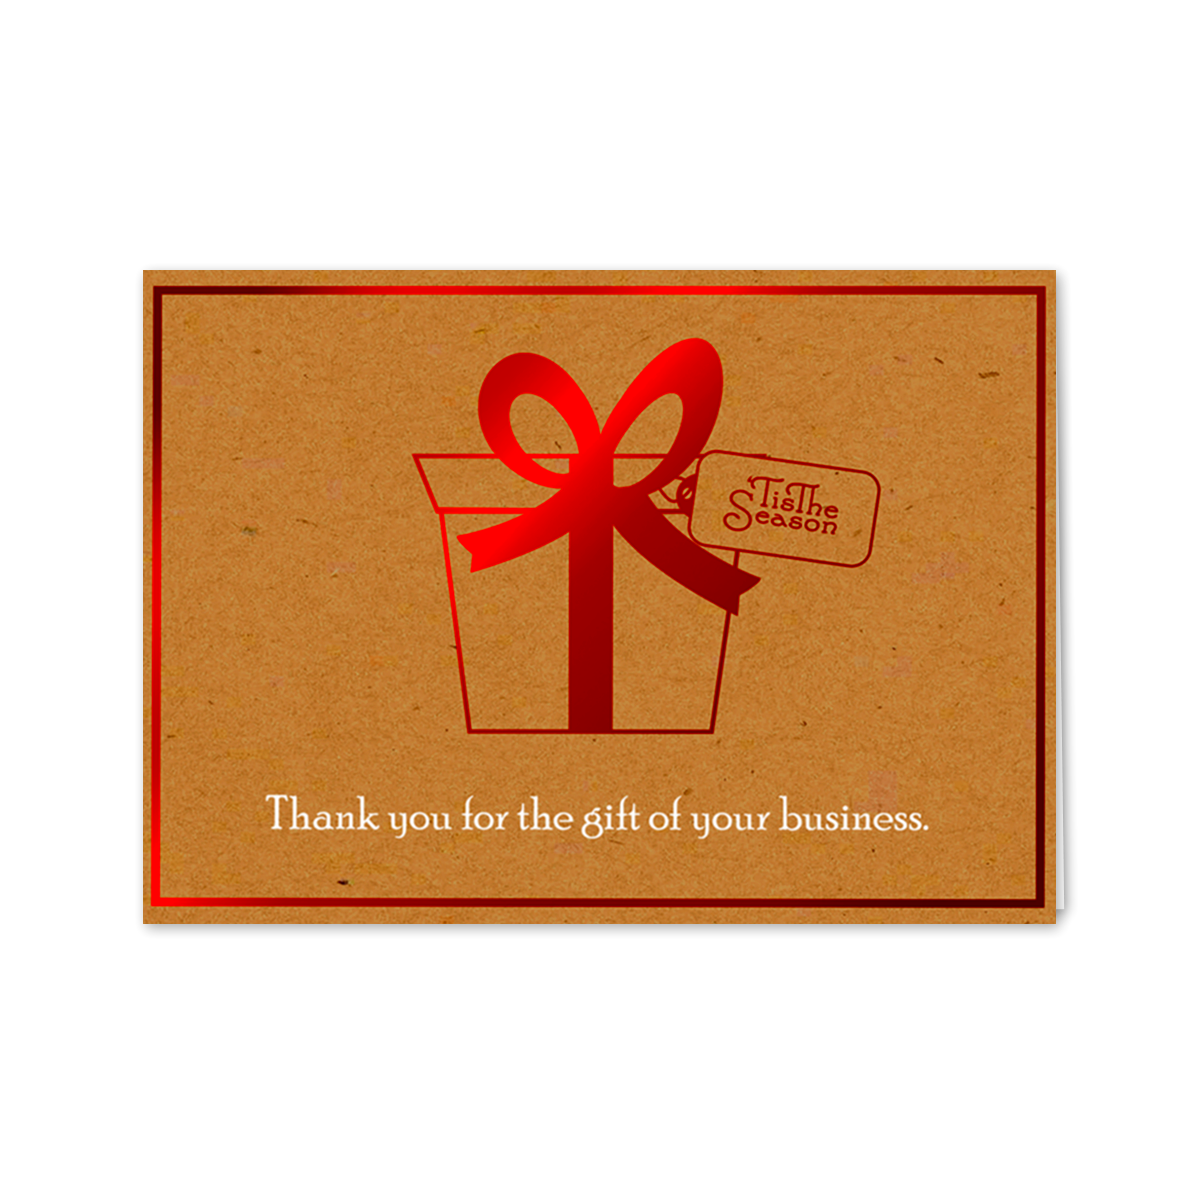 Holiday business appreciation greeting card mines press picture of holiday business appreciation greeting card m4hsunfo